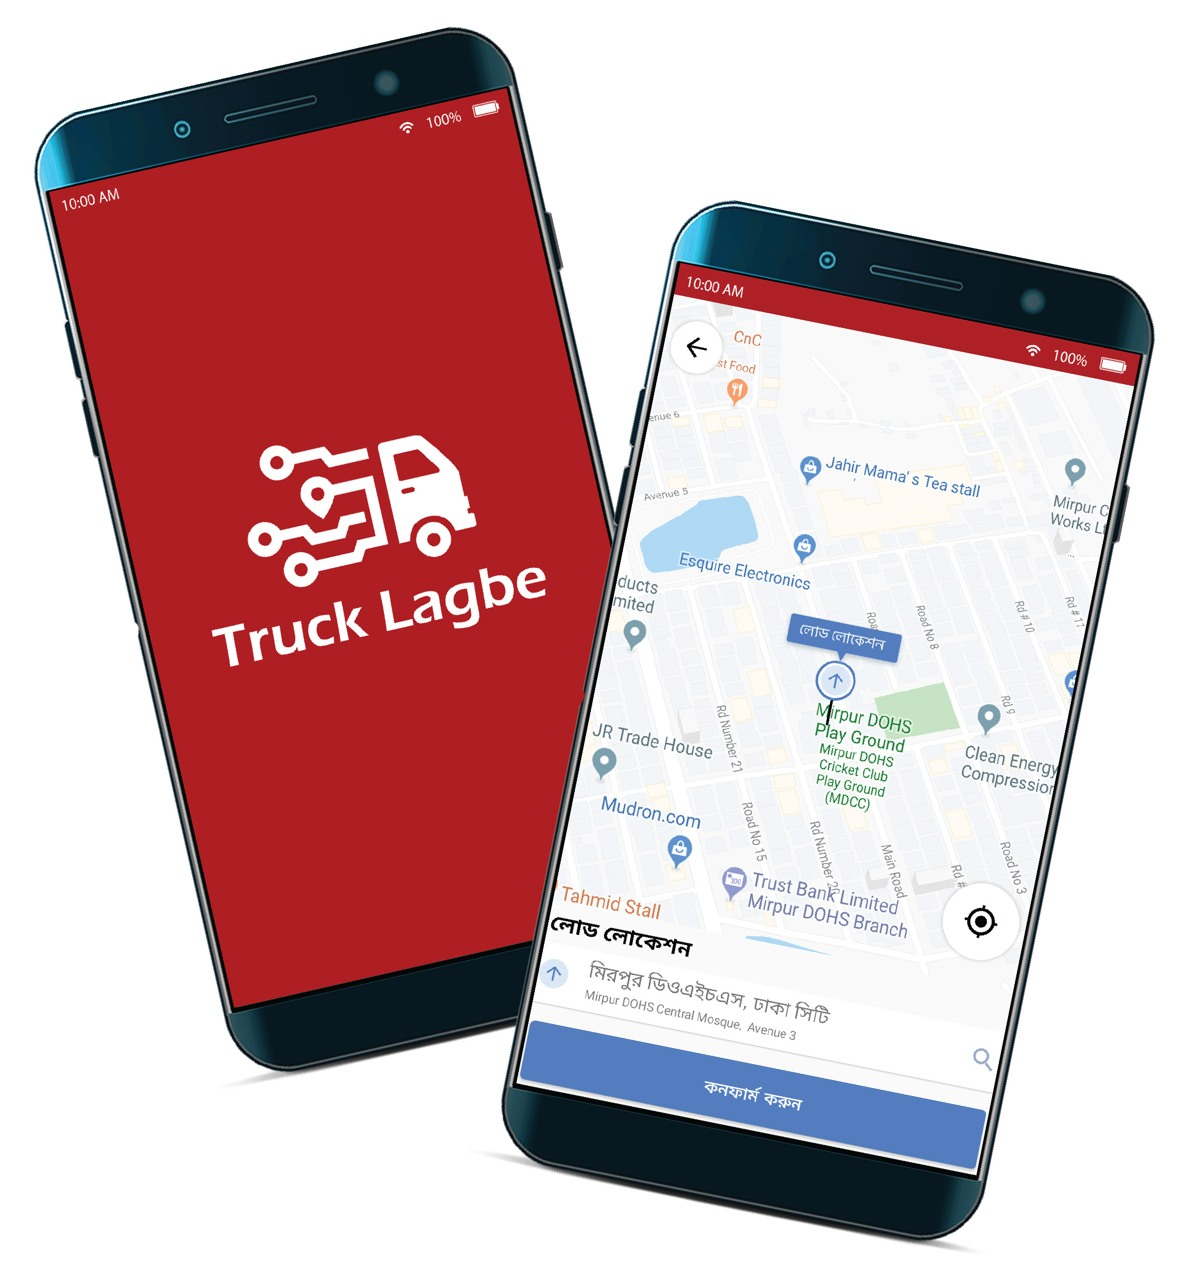 Truck Lagbe's Multi-pronged Strategy To Make On-demand Trucking a Reality In Bangladesh: Technology, Trust, Transparency, and Tenacity